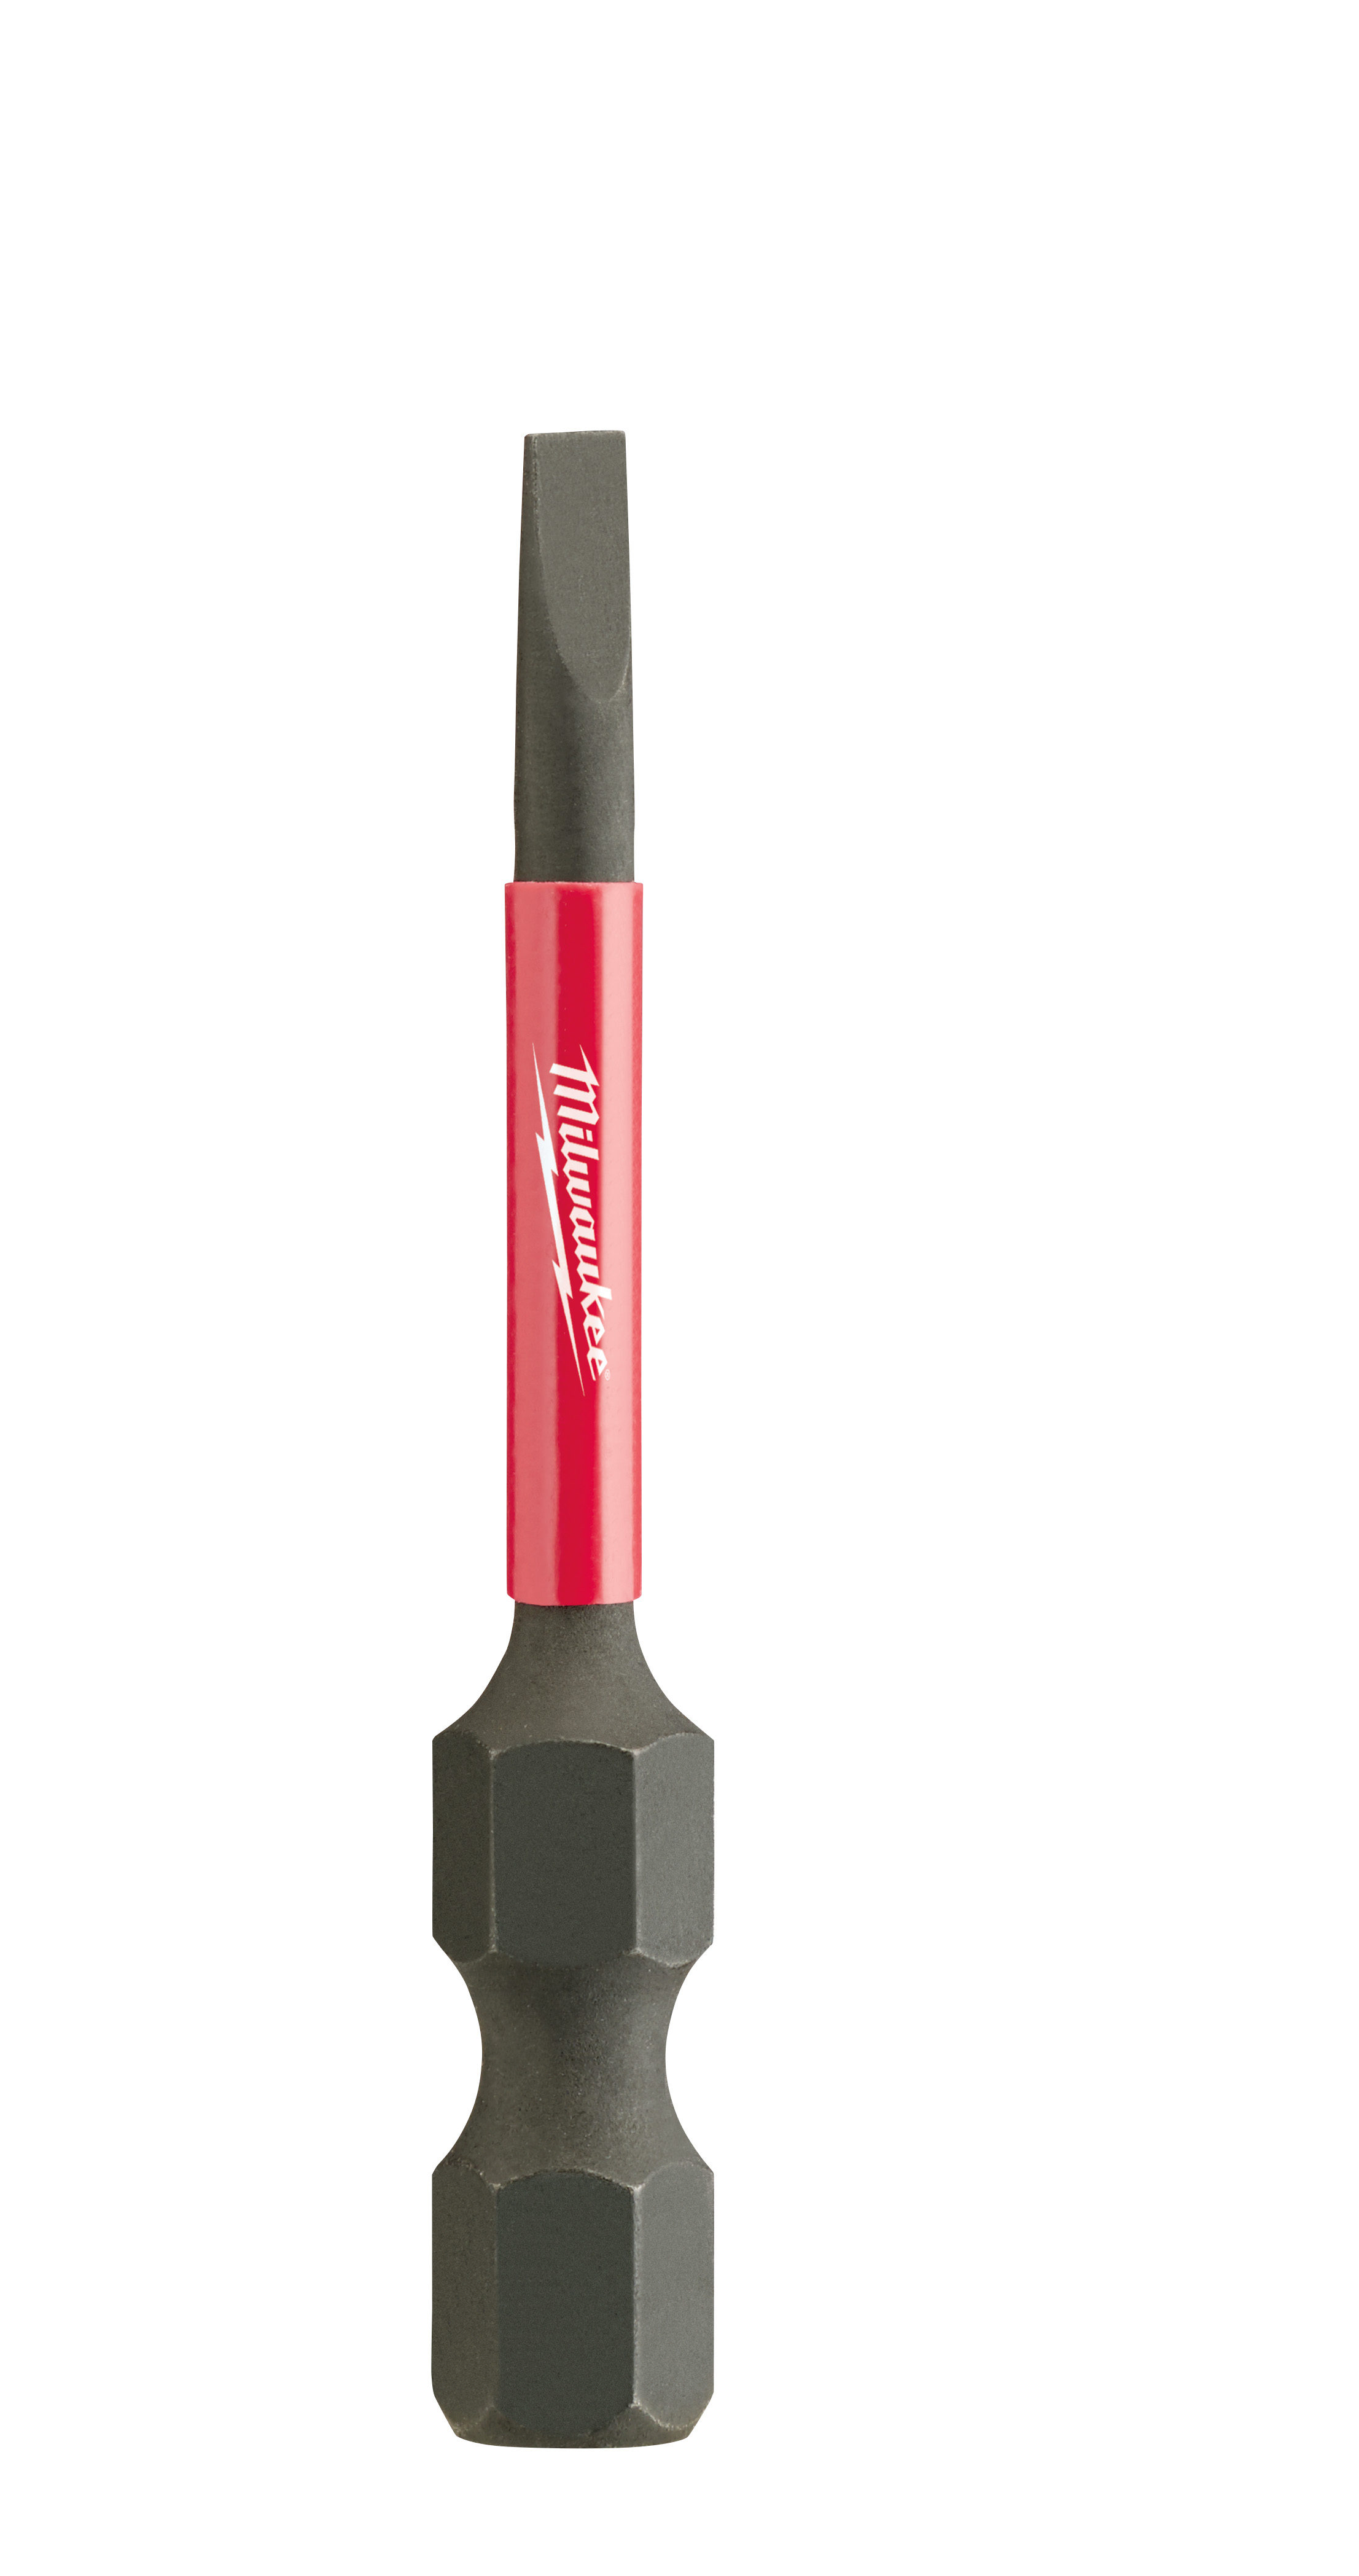 Milwaukee® SHOCKWAVE™ 48-32-4755 Impact Power Bit, 7/64 in Slotted Point, 2 in OAL, 1/4 in, Steel